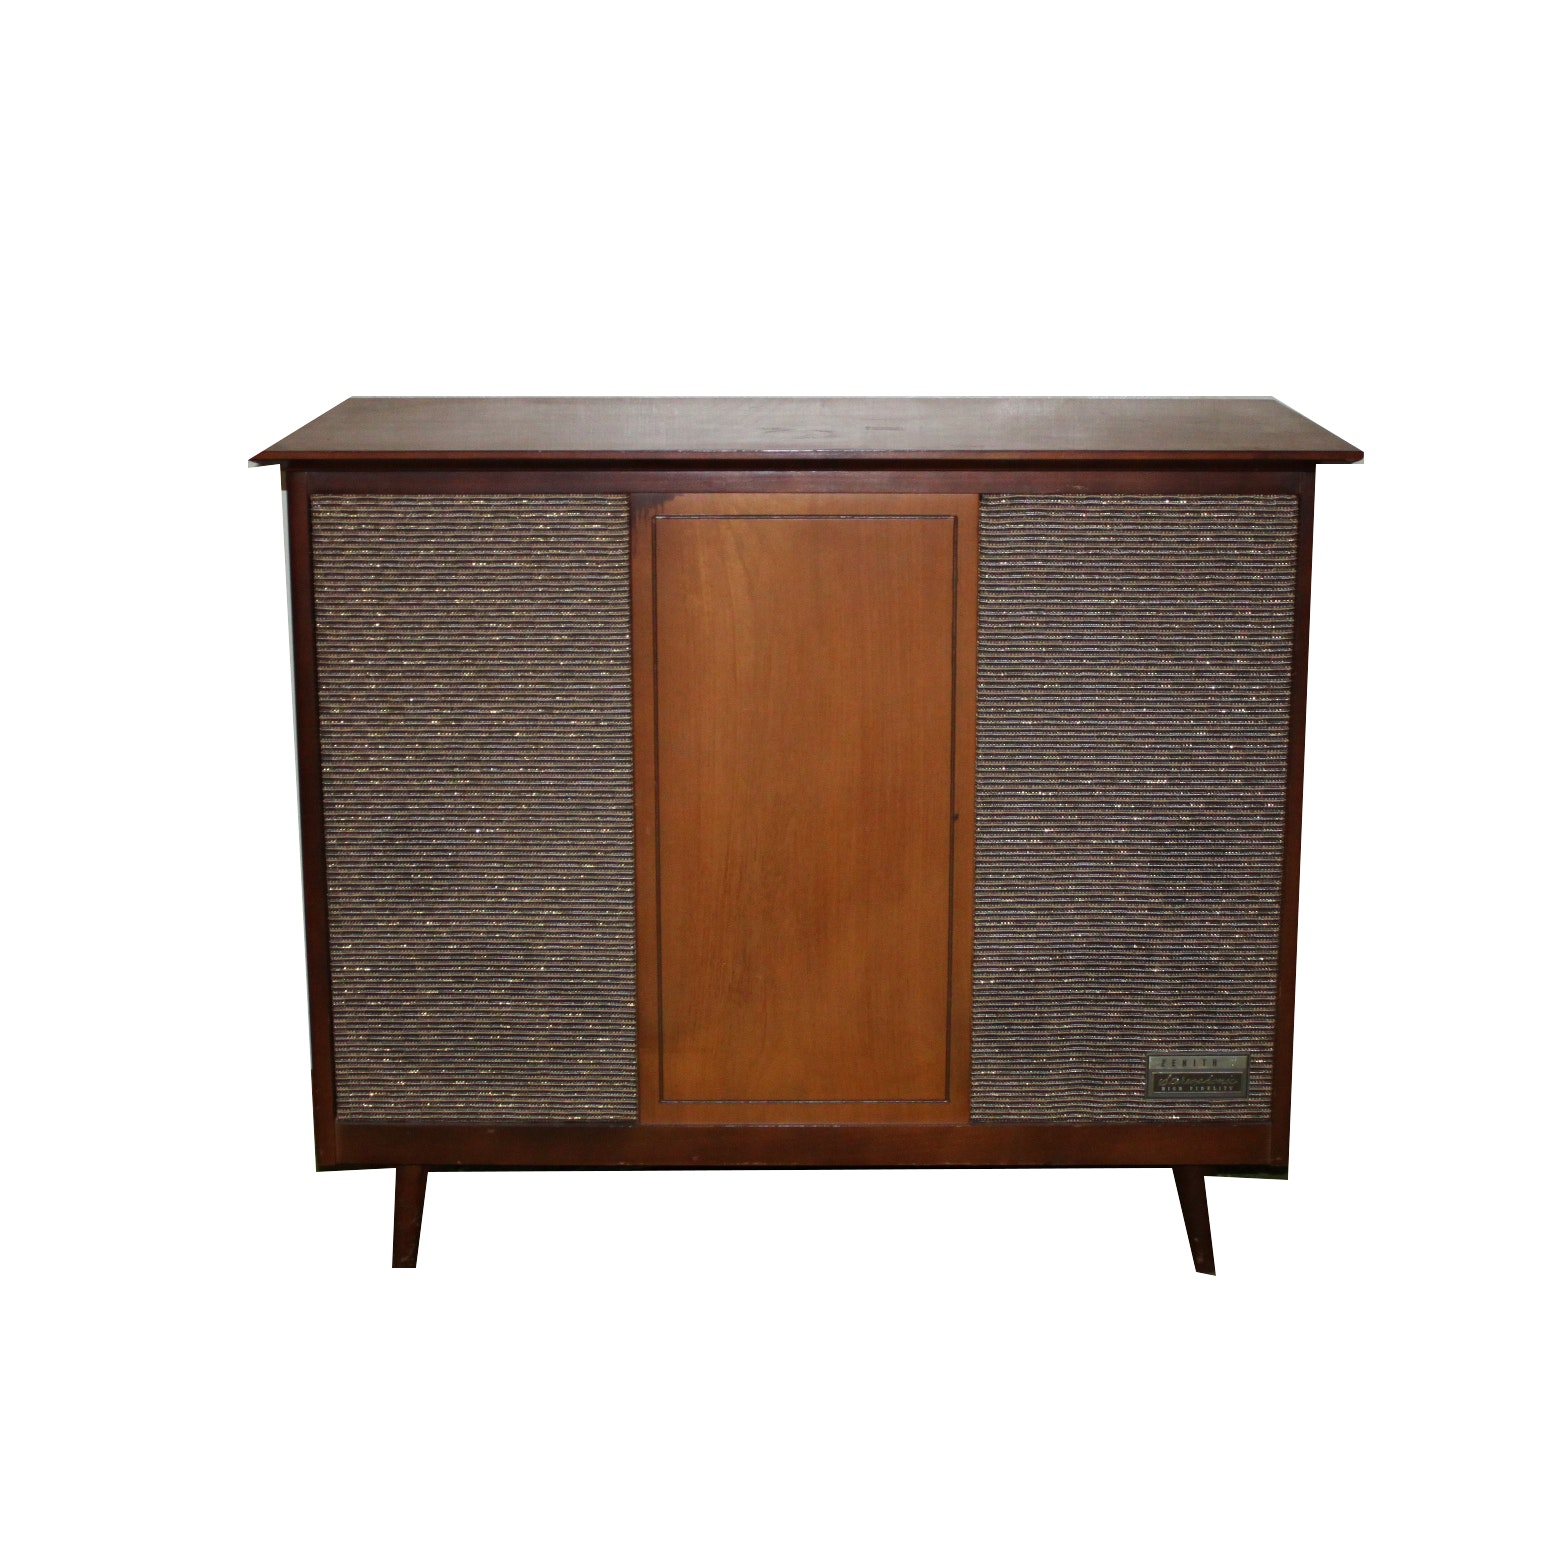 Mid-Century Zenith Record Player Cabinet